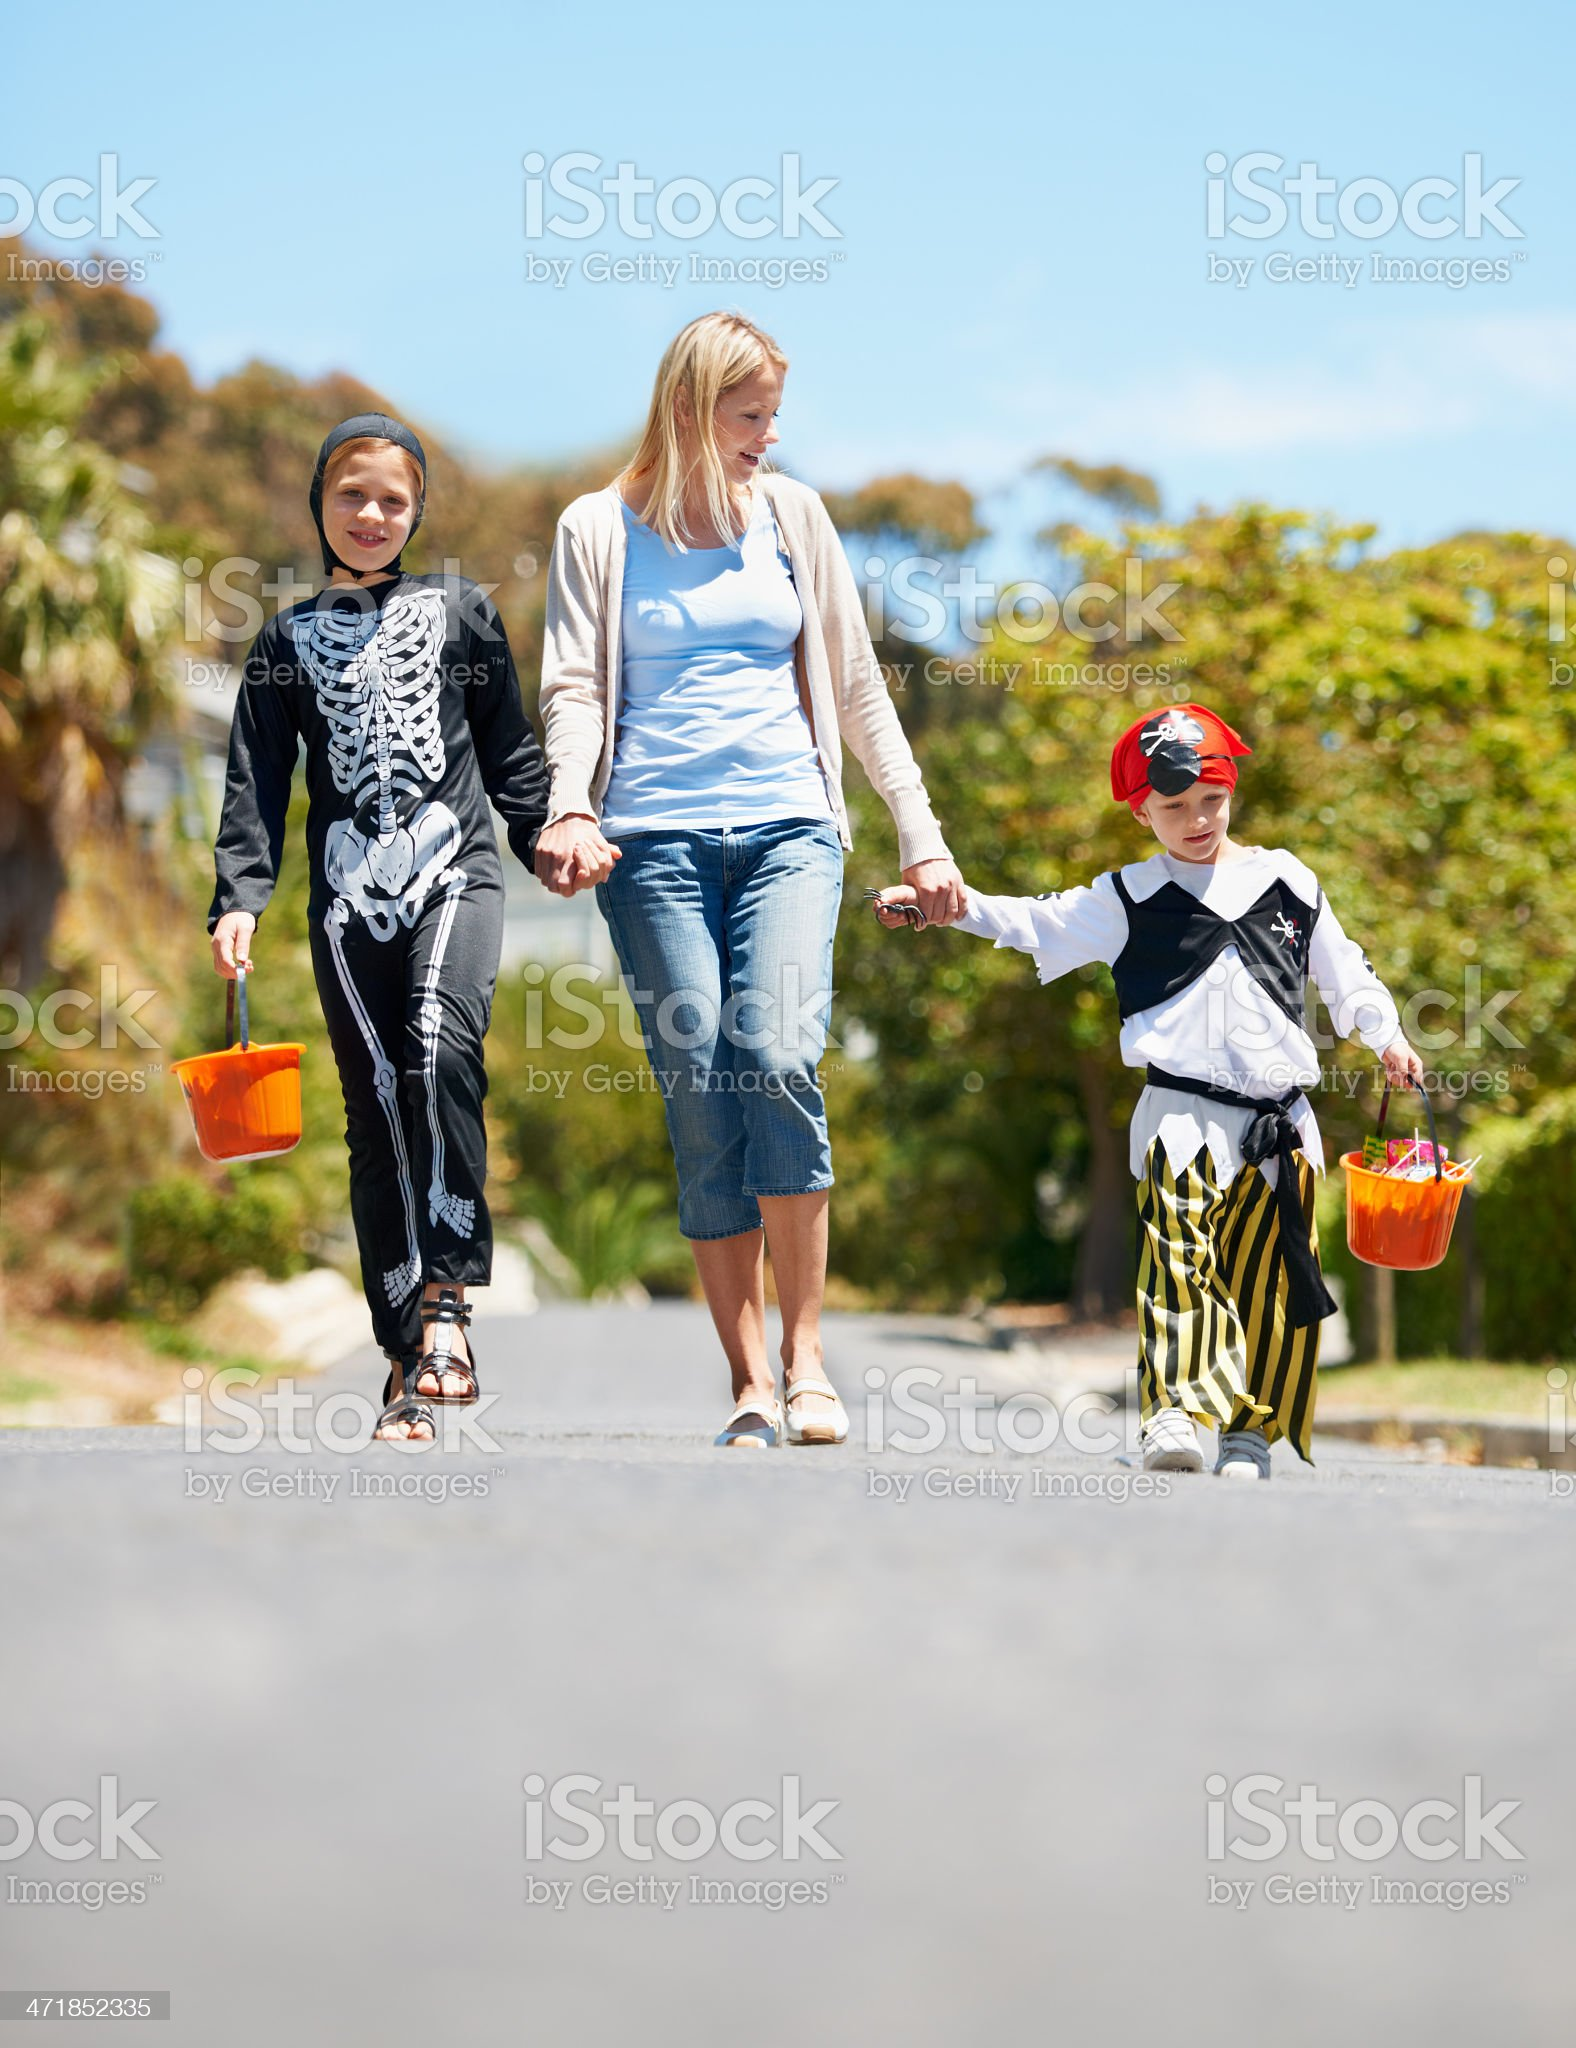 Trick or treating: A great way to bond! royalty-free stock photo